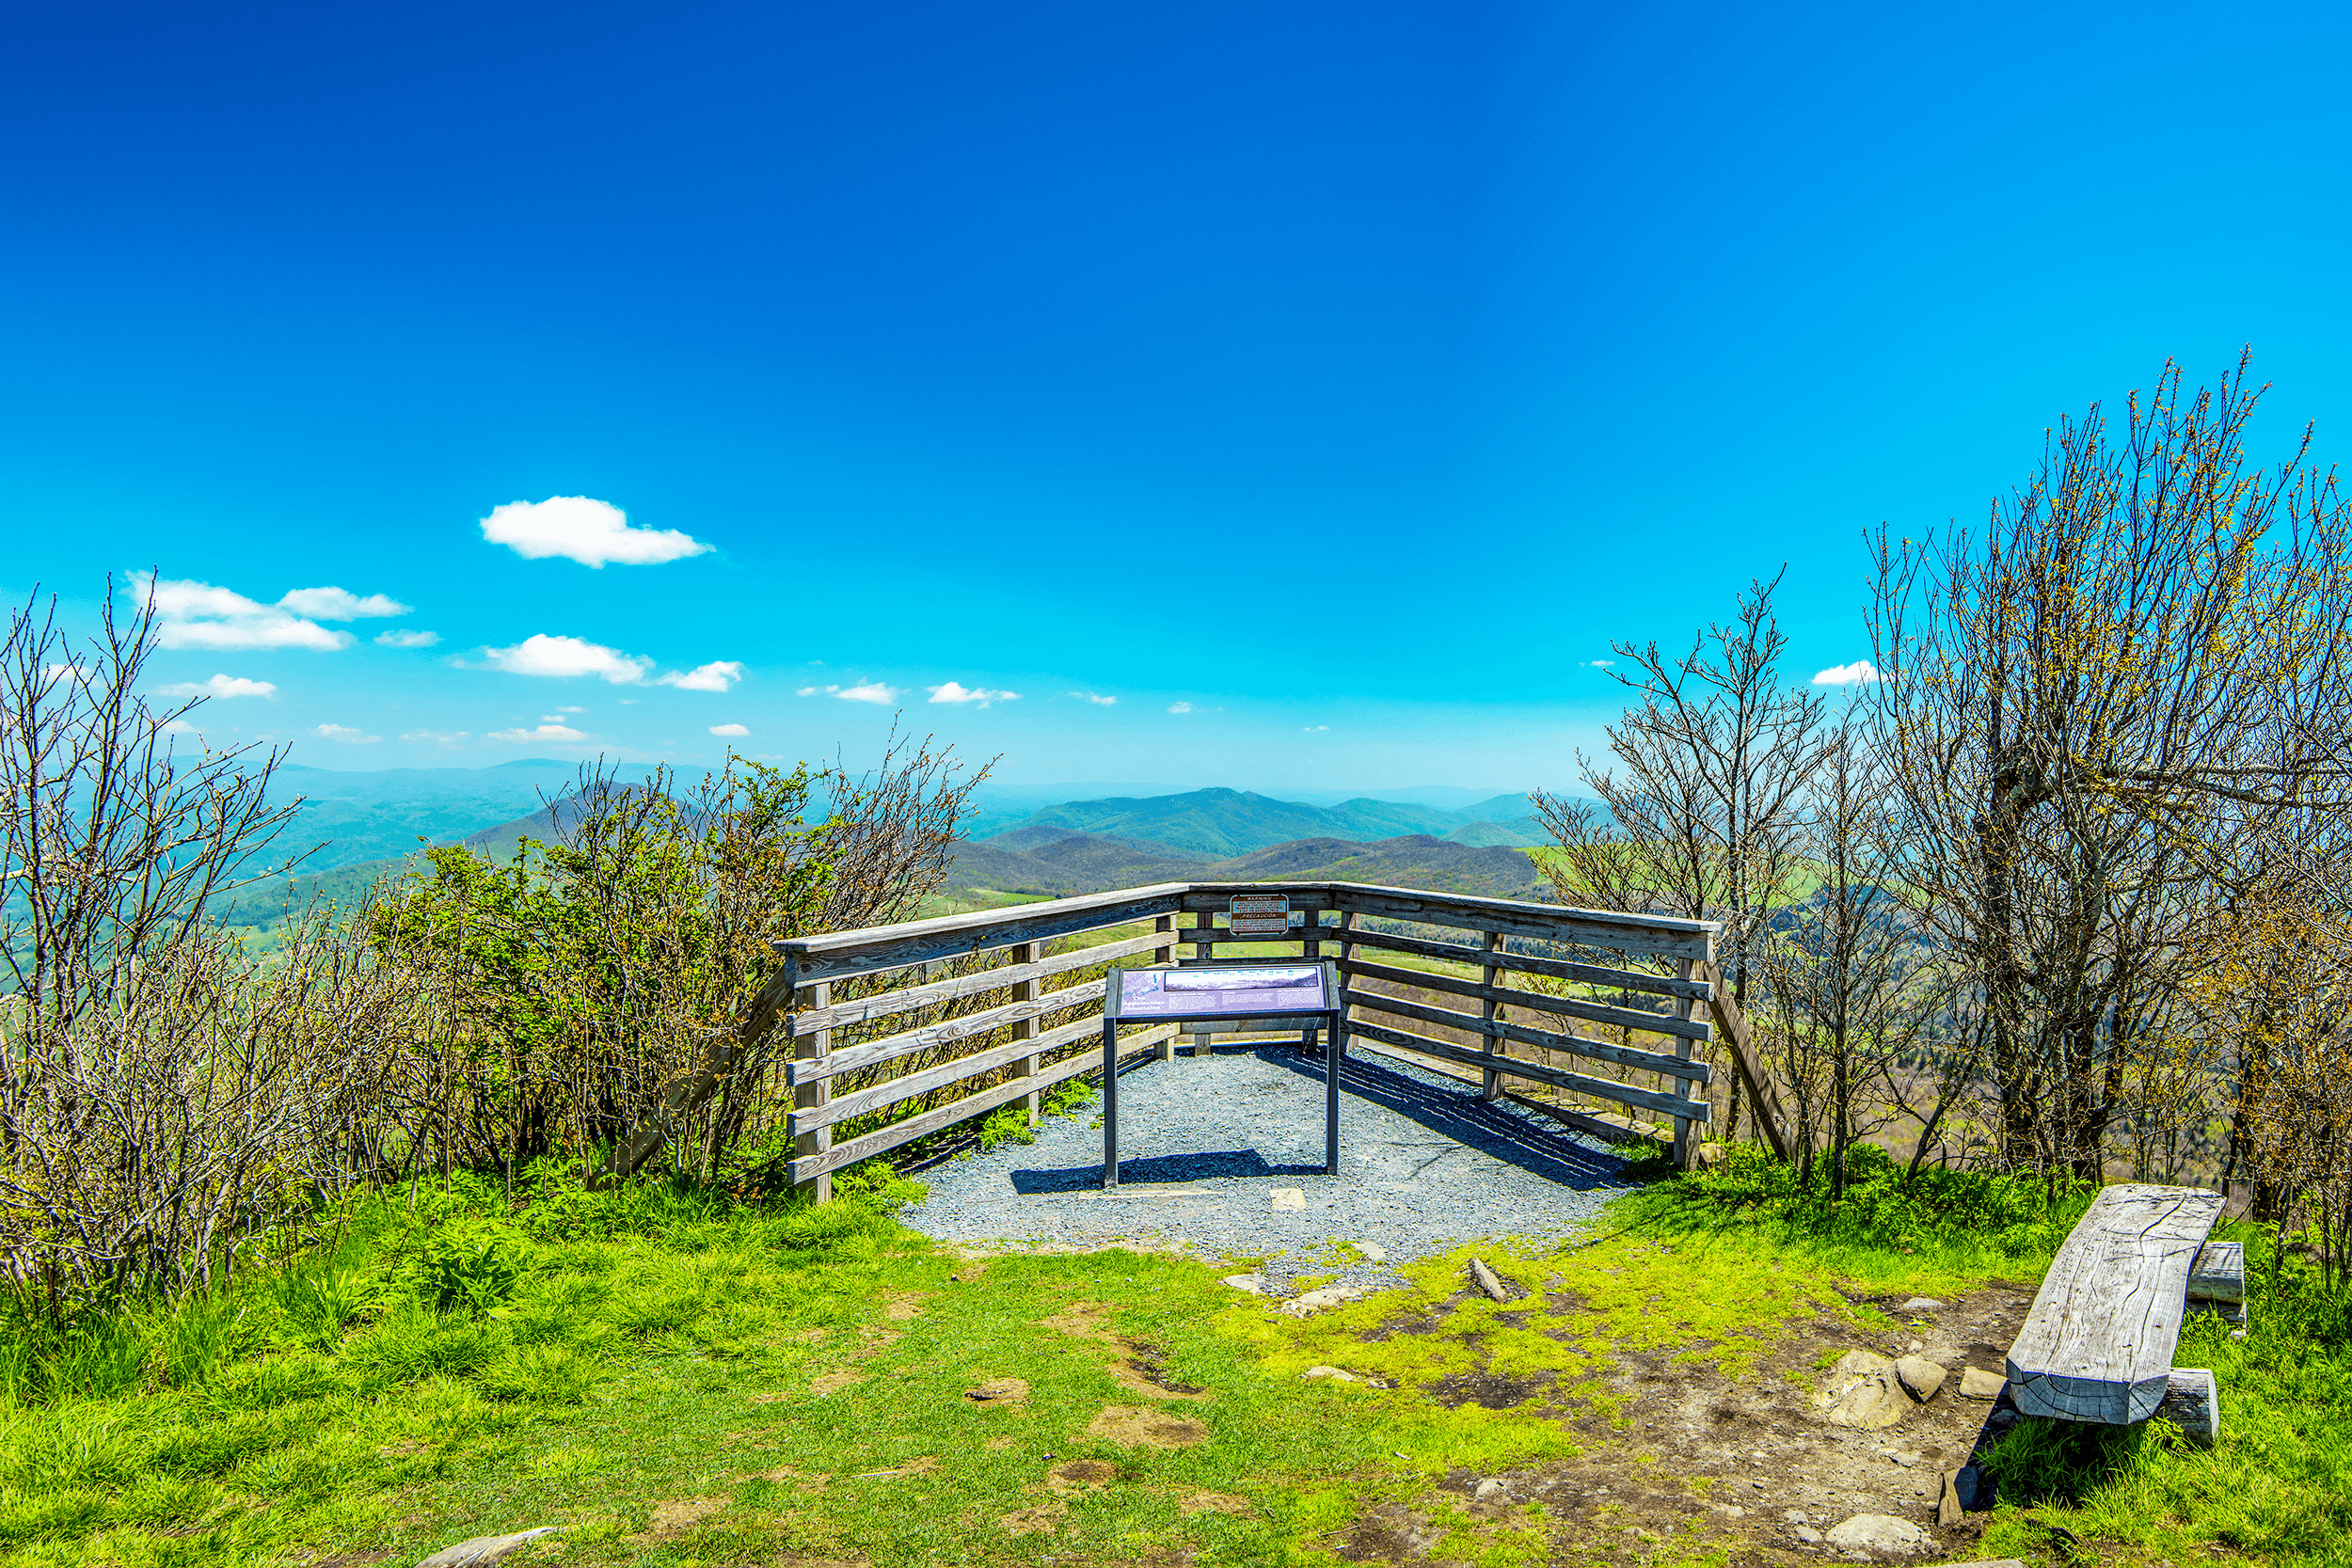 The north lookout is the summit of  Elk Knob  at an elevation 5,520 feet (1,682 meters). The platform features two benches on either side. Similar to the south lookout, an information sign explains the mountain range in view.